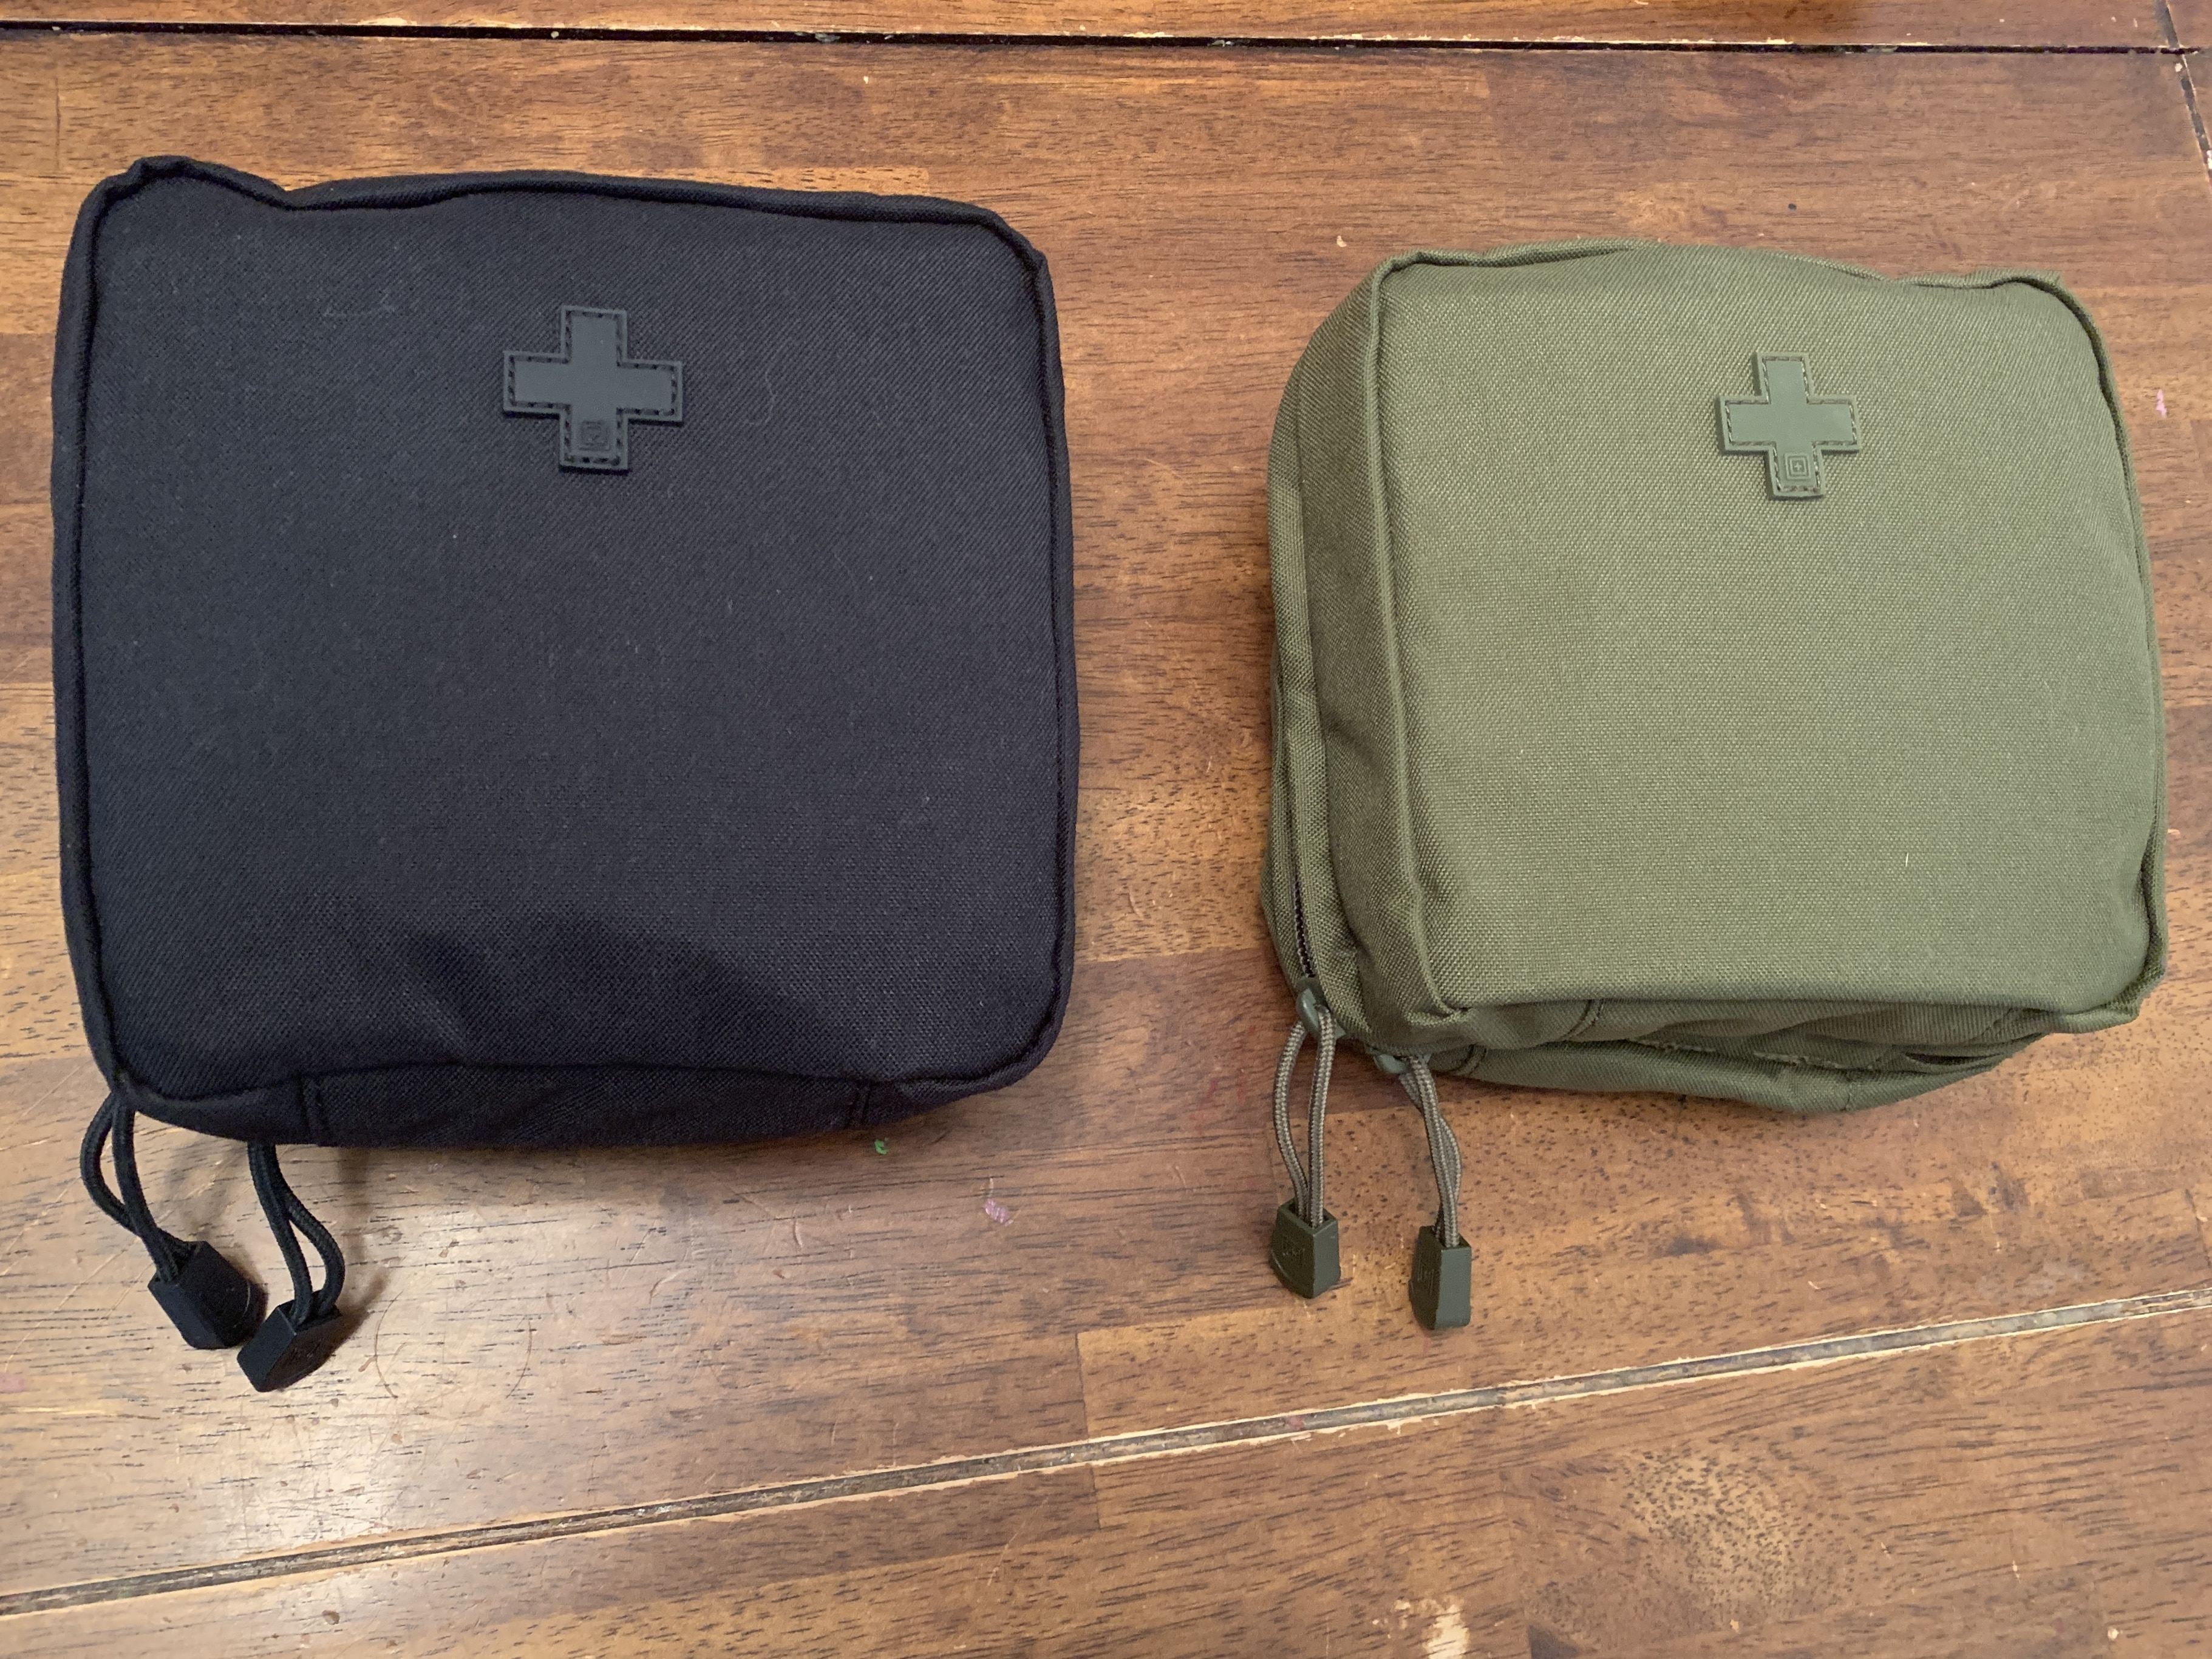 Pouches of first aid kit displayed.